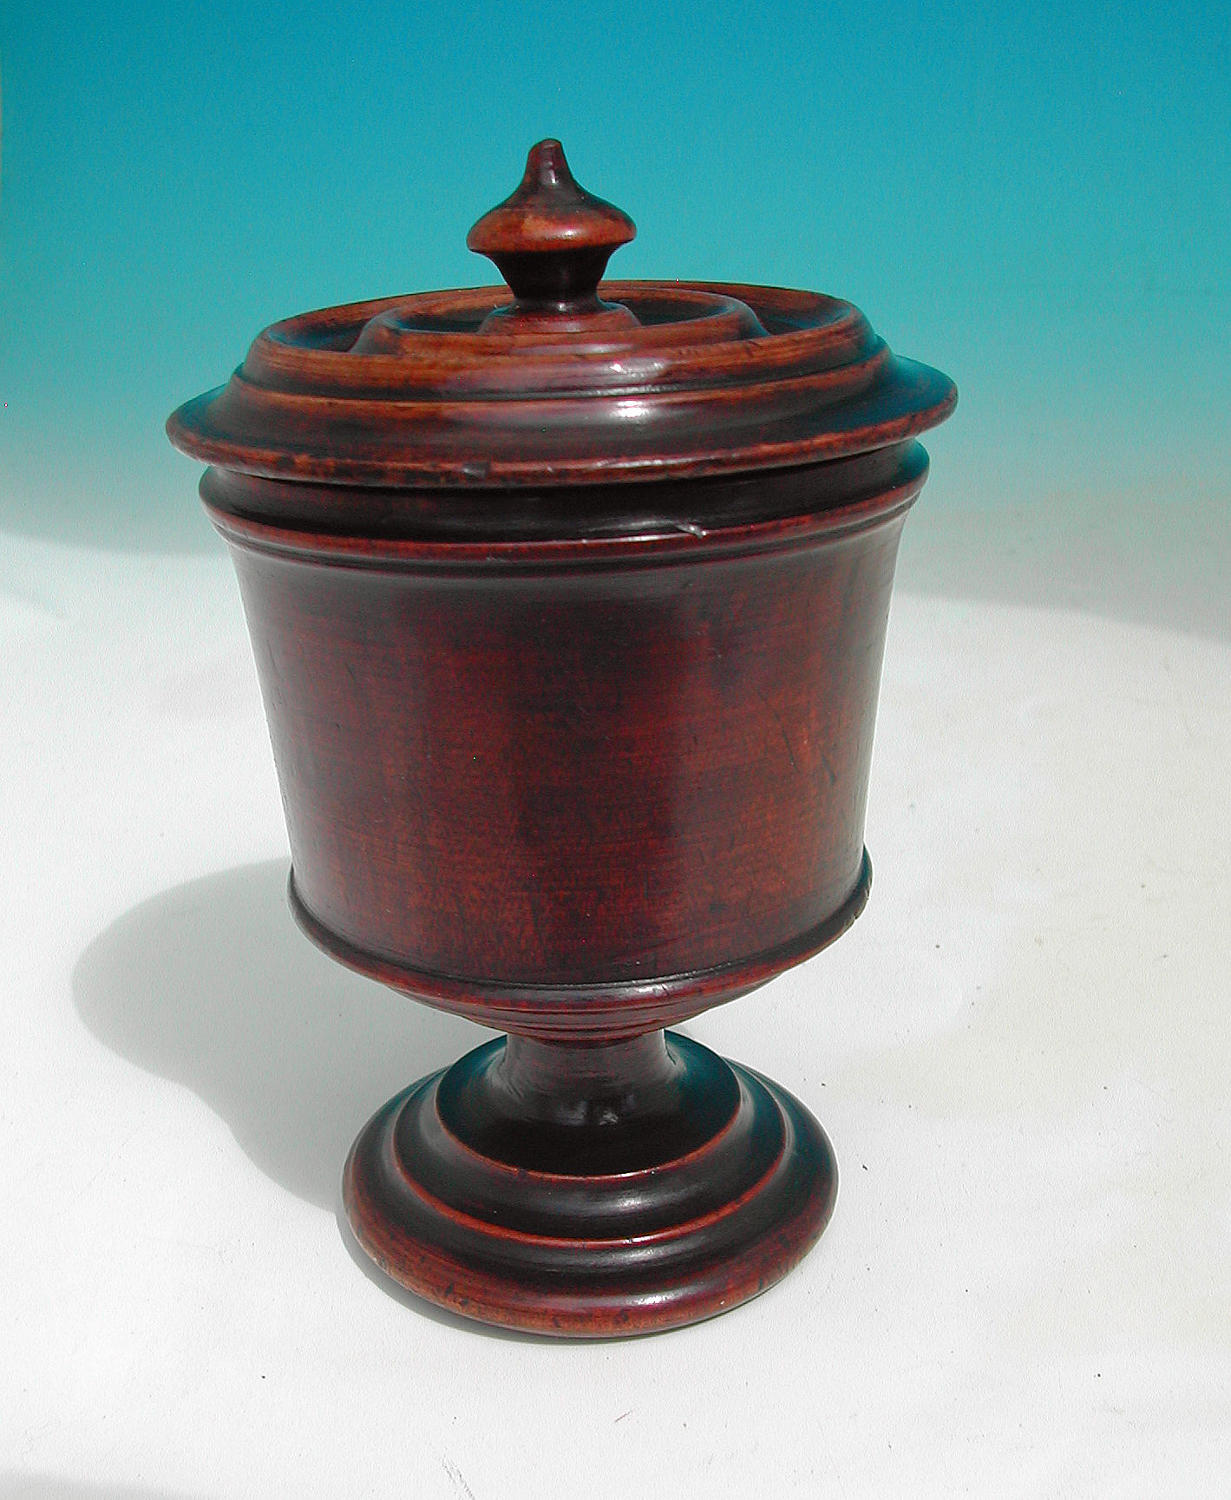 Antique 18thc Walnut Lidded Spice Jar. English. 1740-60.